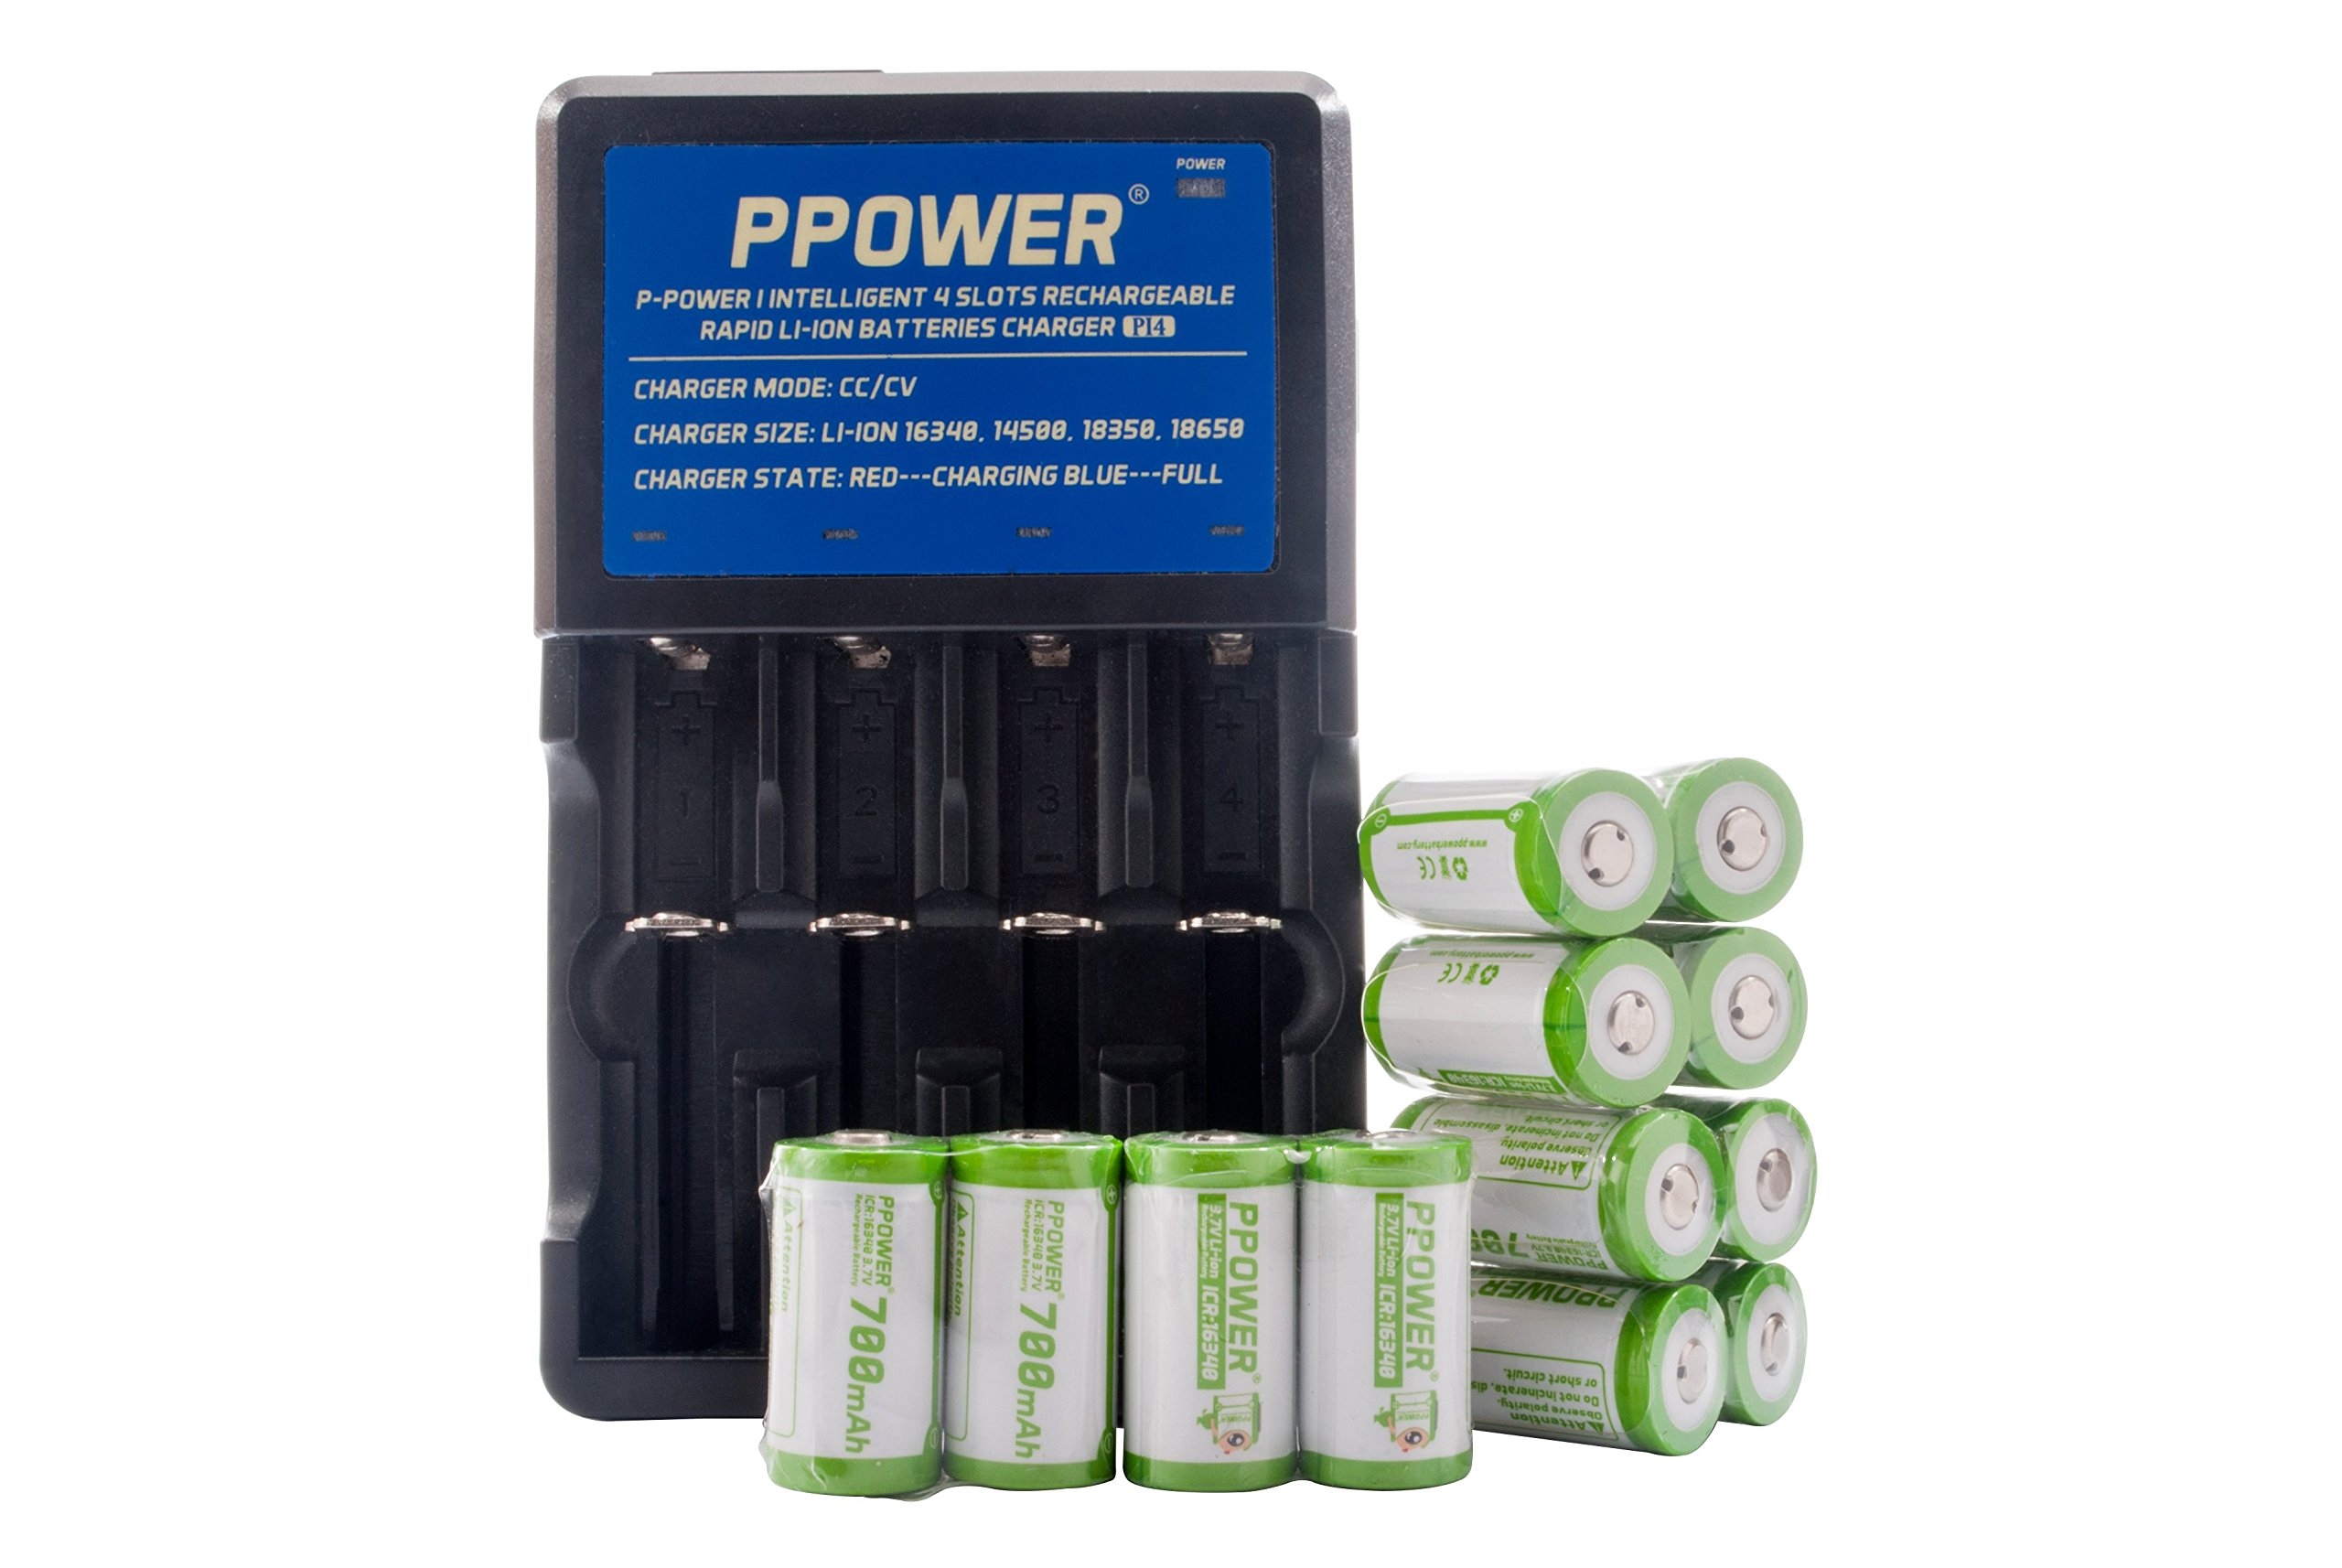 Ppower Pbe 12 packs of 700mAh 3.7v Cr123a Rechargeable Battery + PPOWER 4 Slots 3.7V Li-ion charger (PI4) + Battery boxes (12X) CE Certified for Arlo Camera, Reolink Argus, Keen, etc